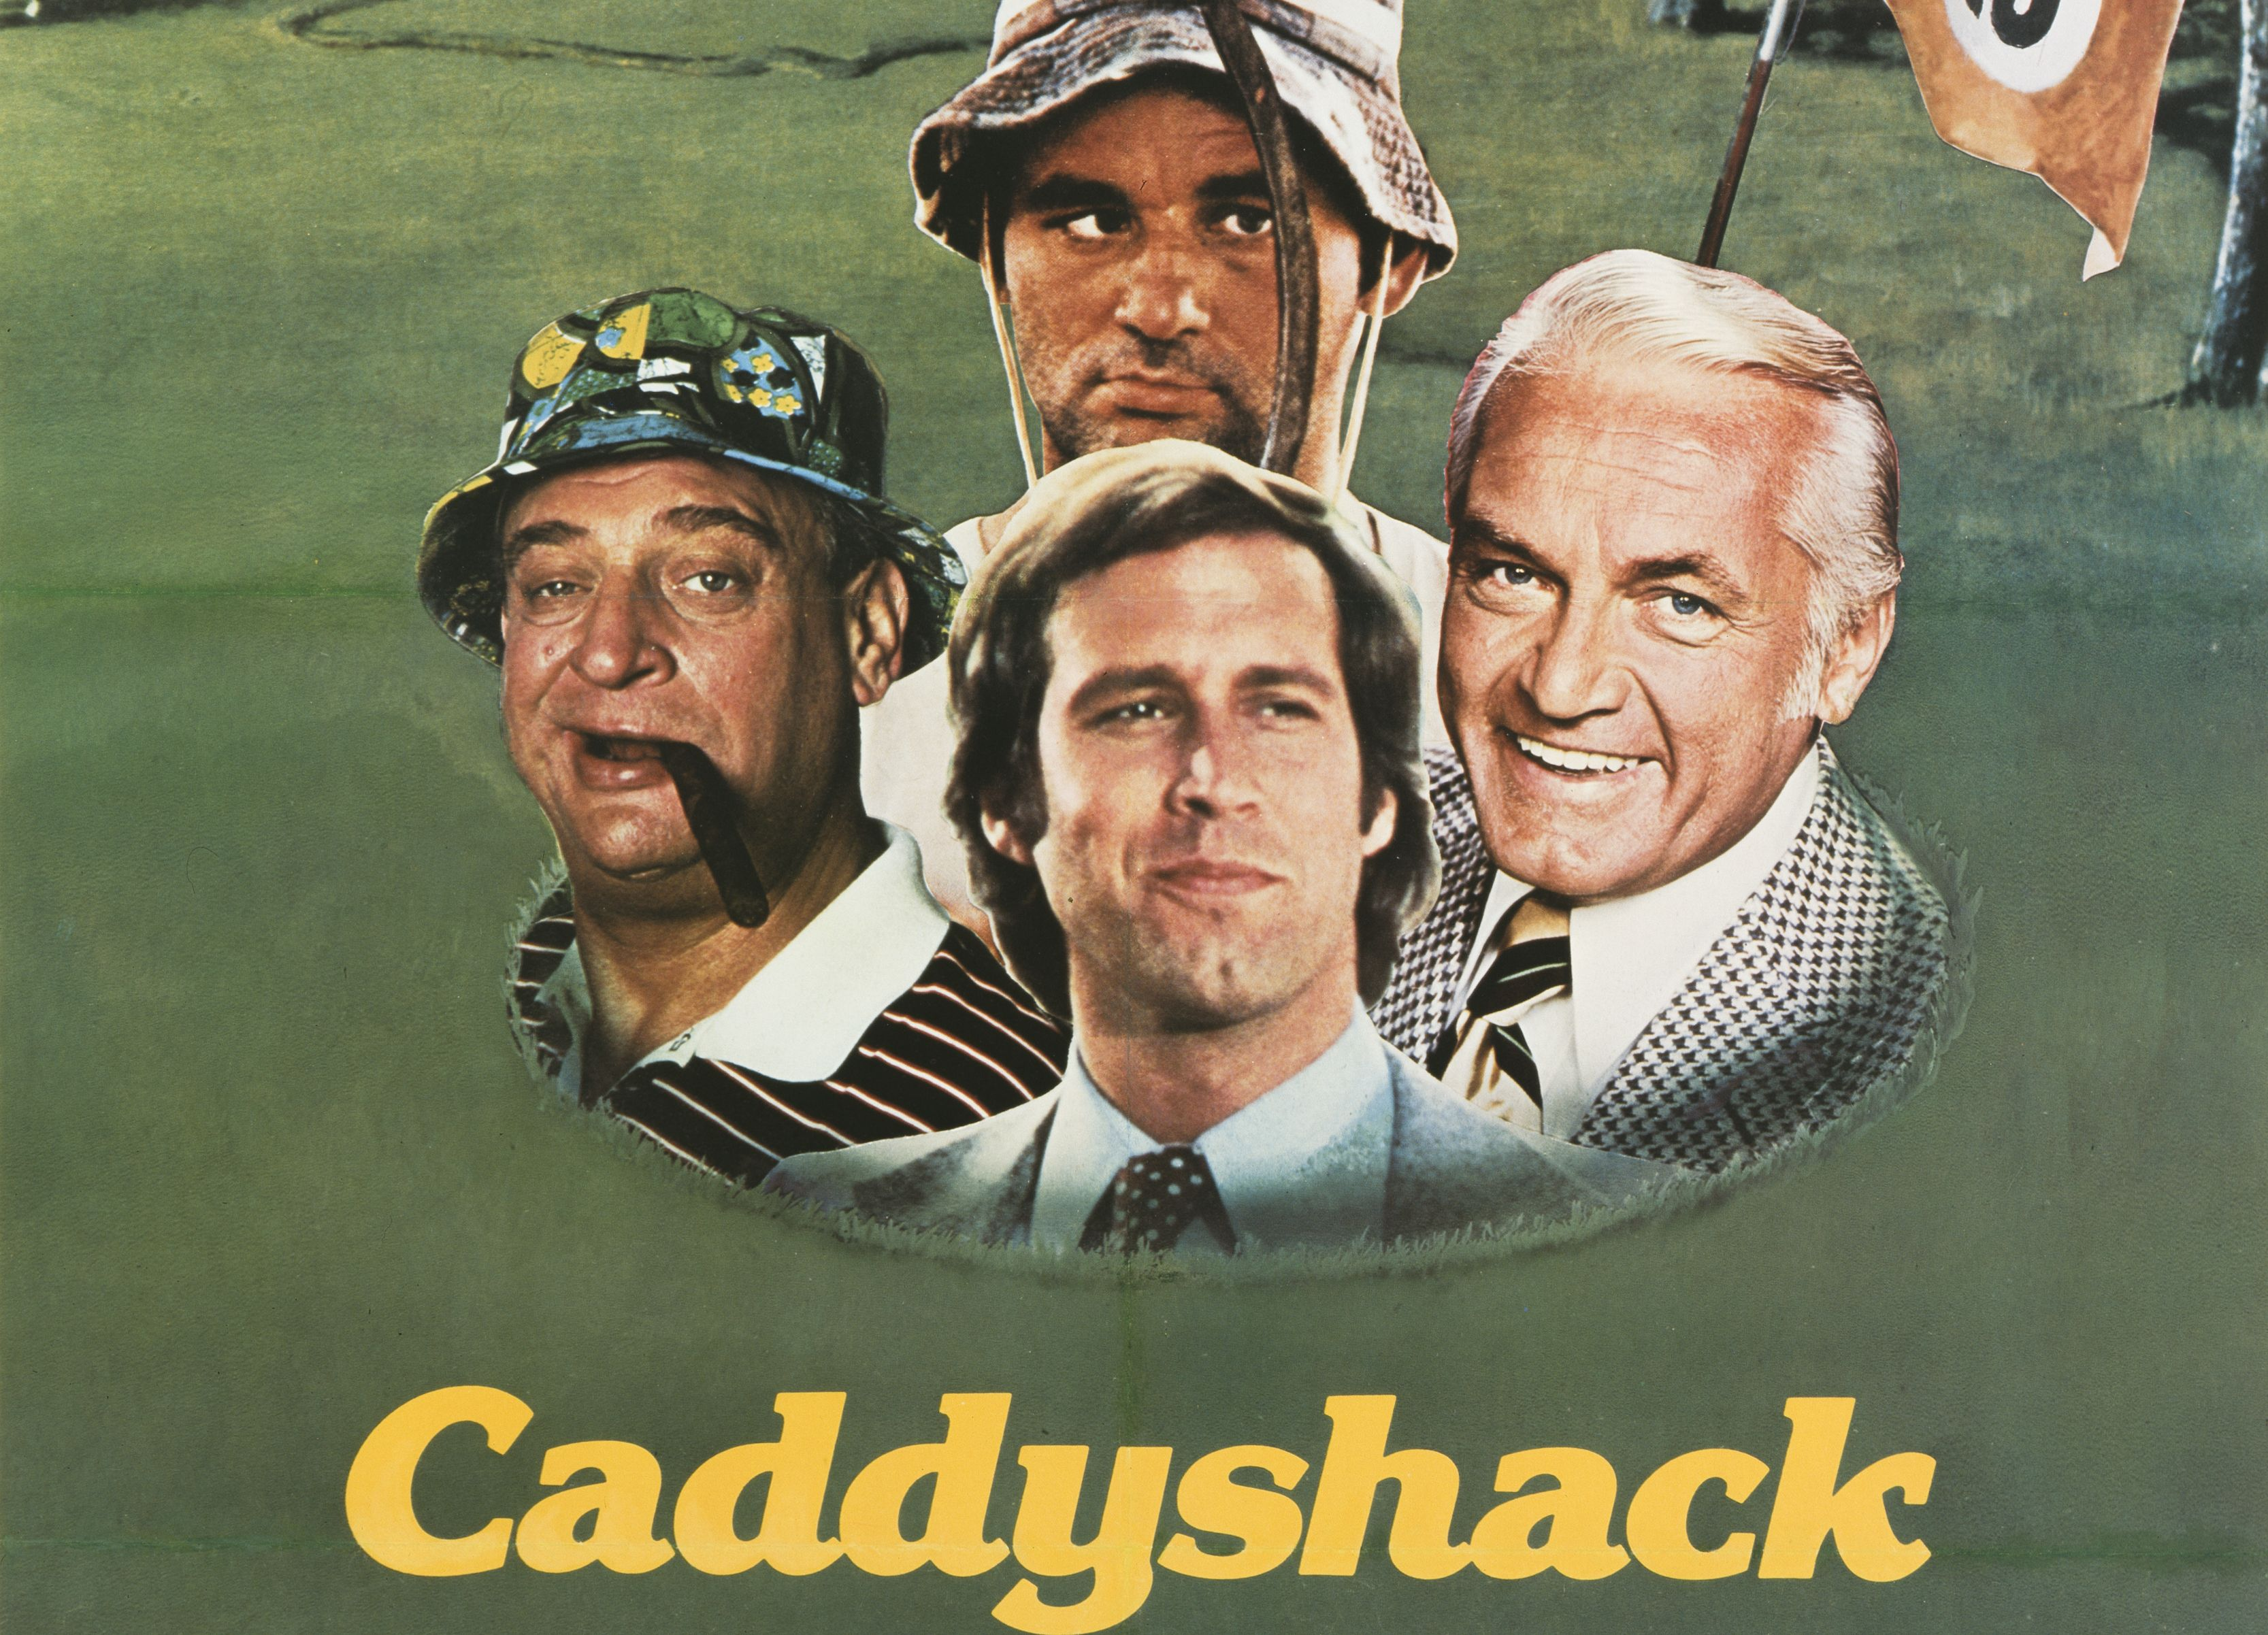 Detail from the movie poster for Caddyshack